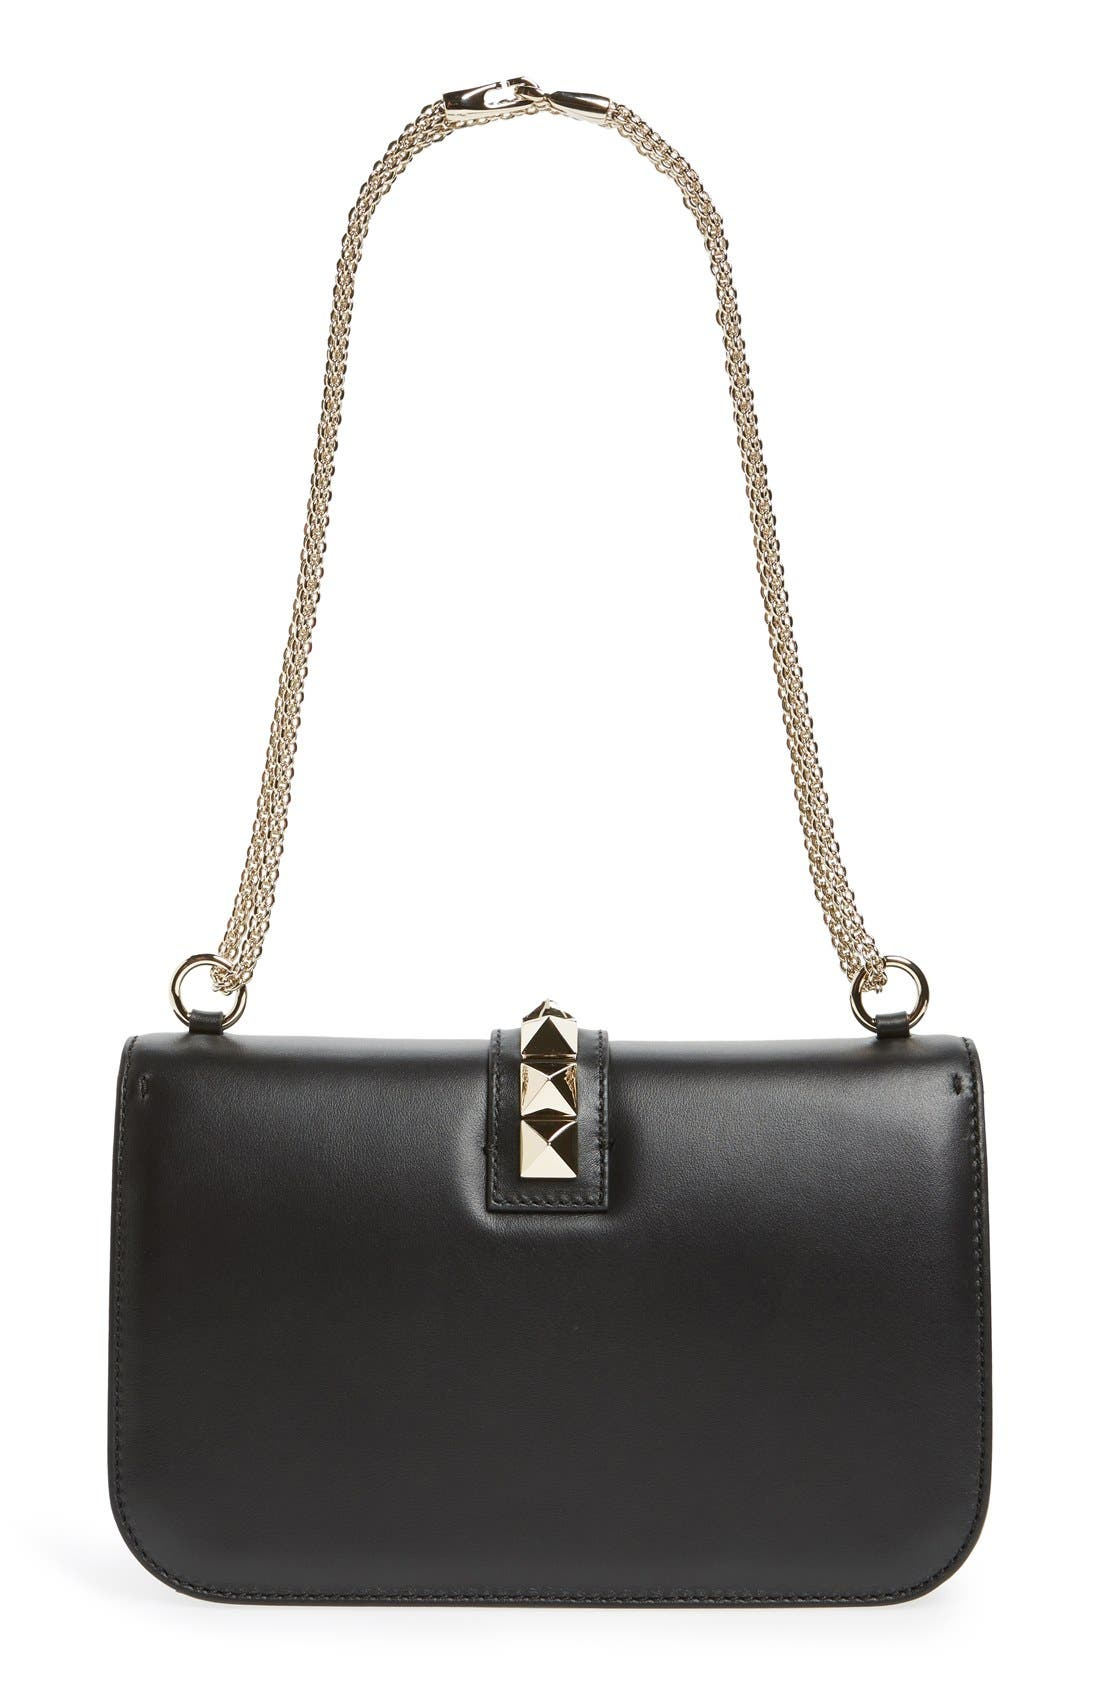 'Medium Lock' Shoulder Bag,                             Alternate thumbnail 3, color,                             NERO